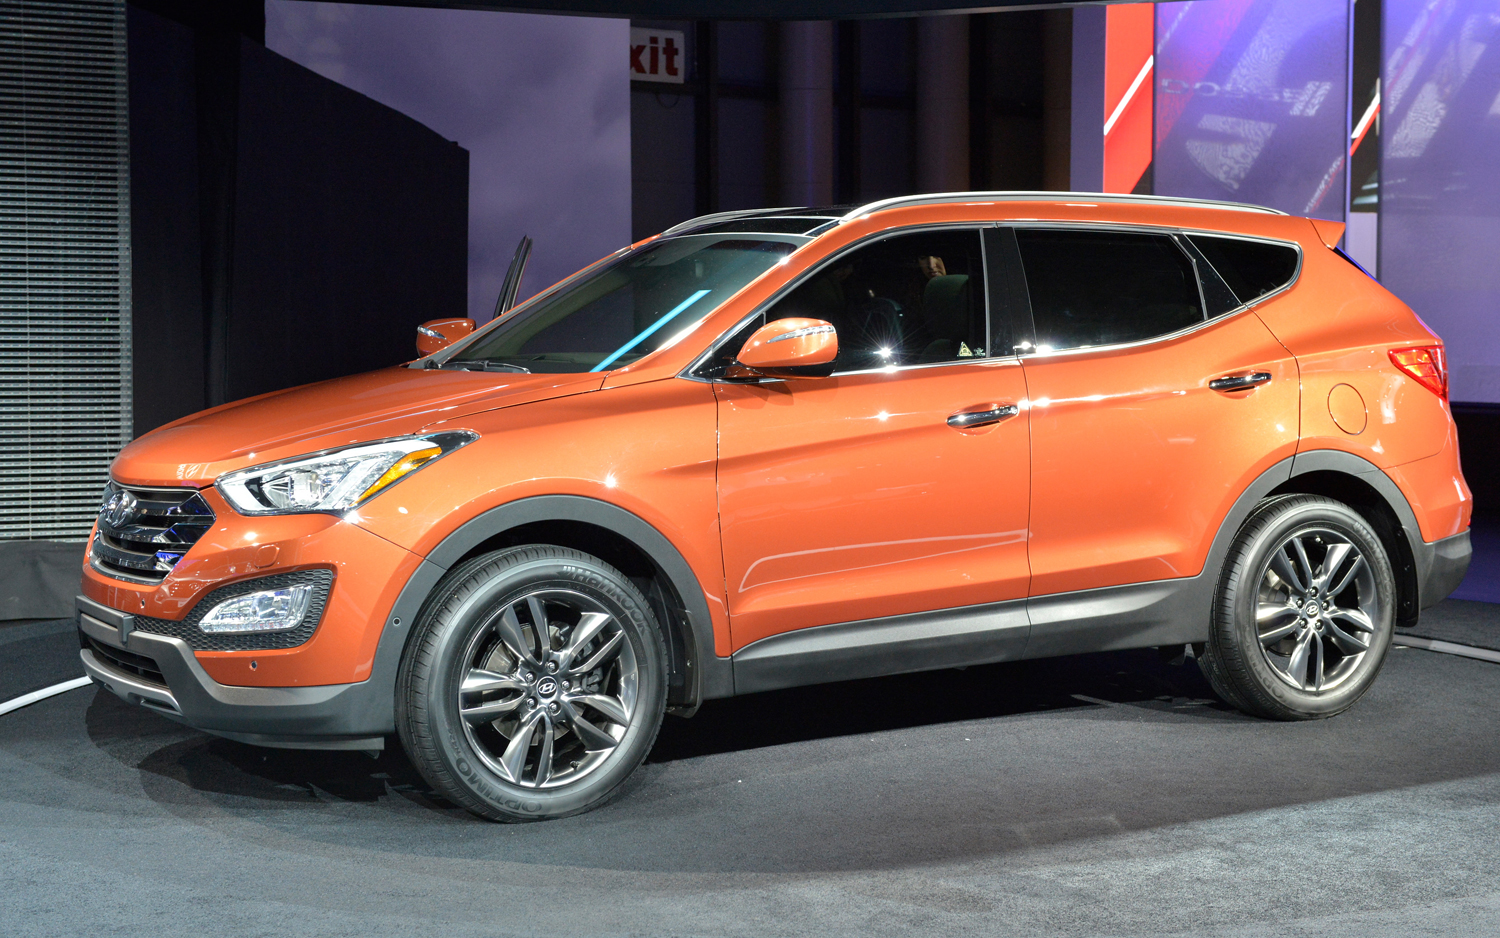 Top 10 Best Selling SUV Cars In India – Rated By Public